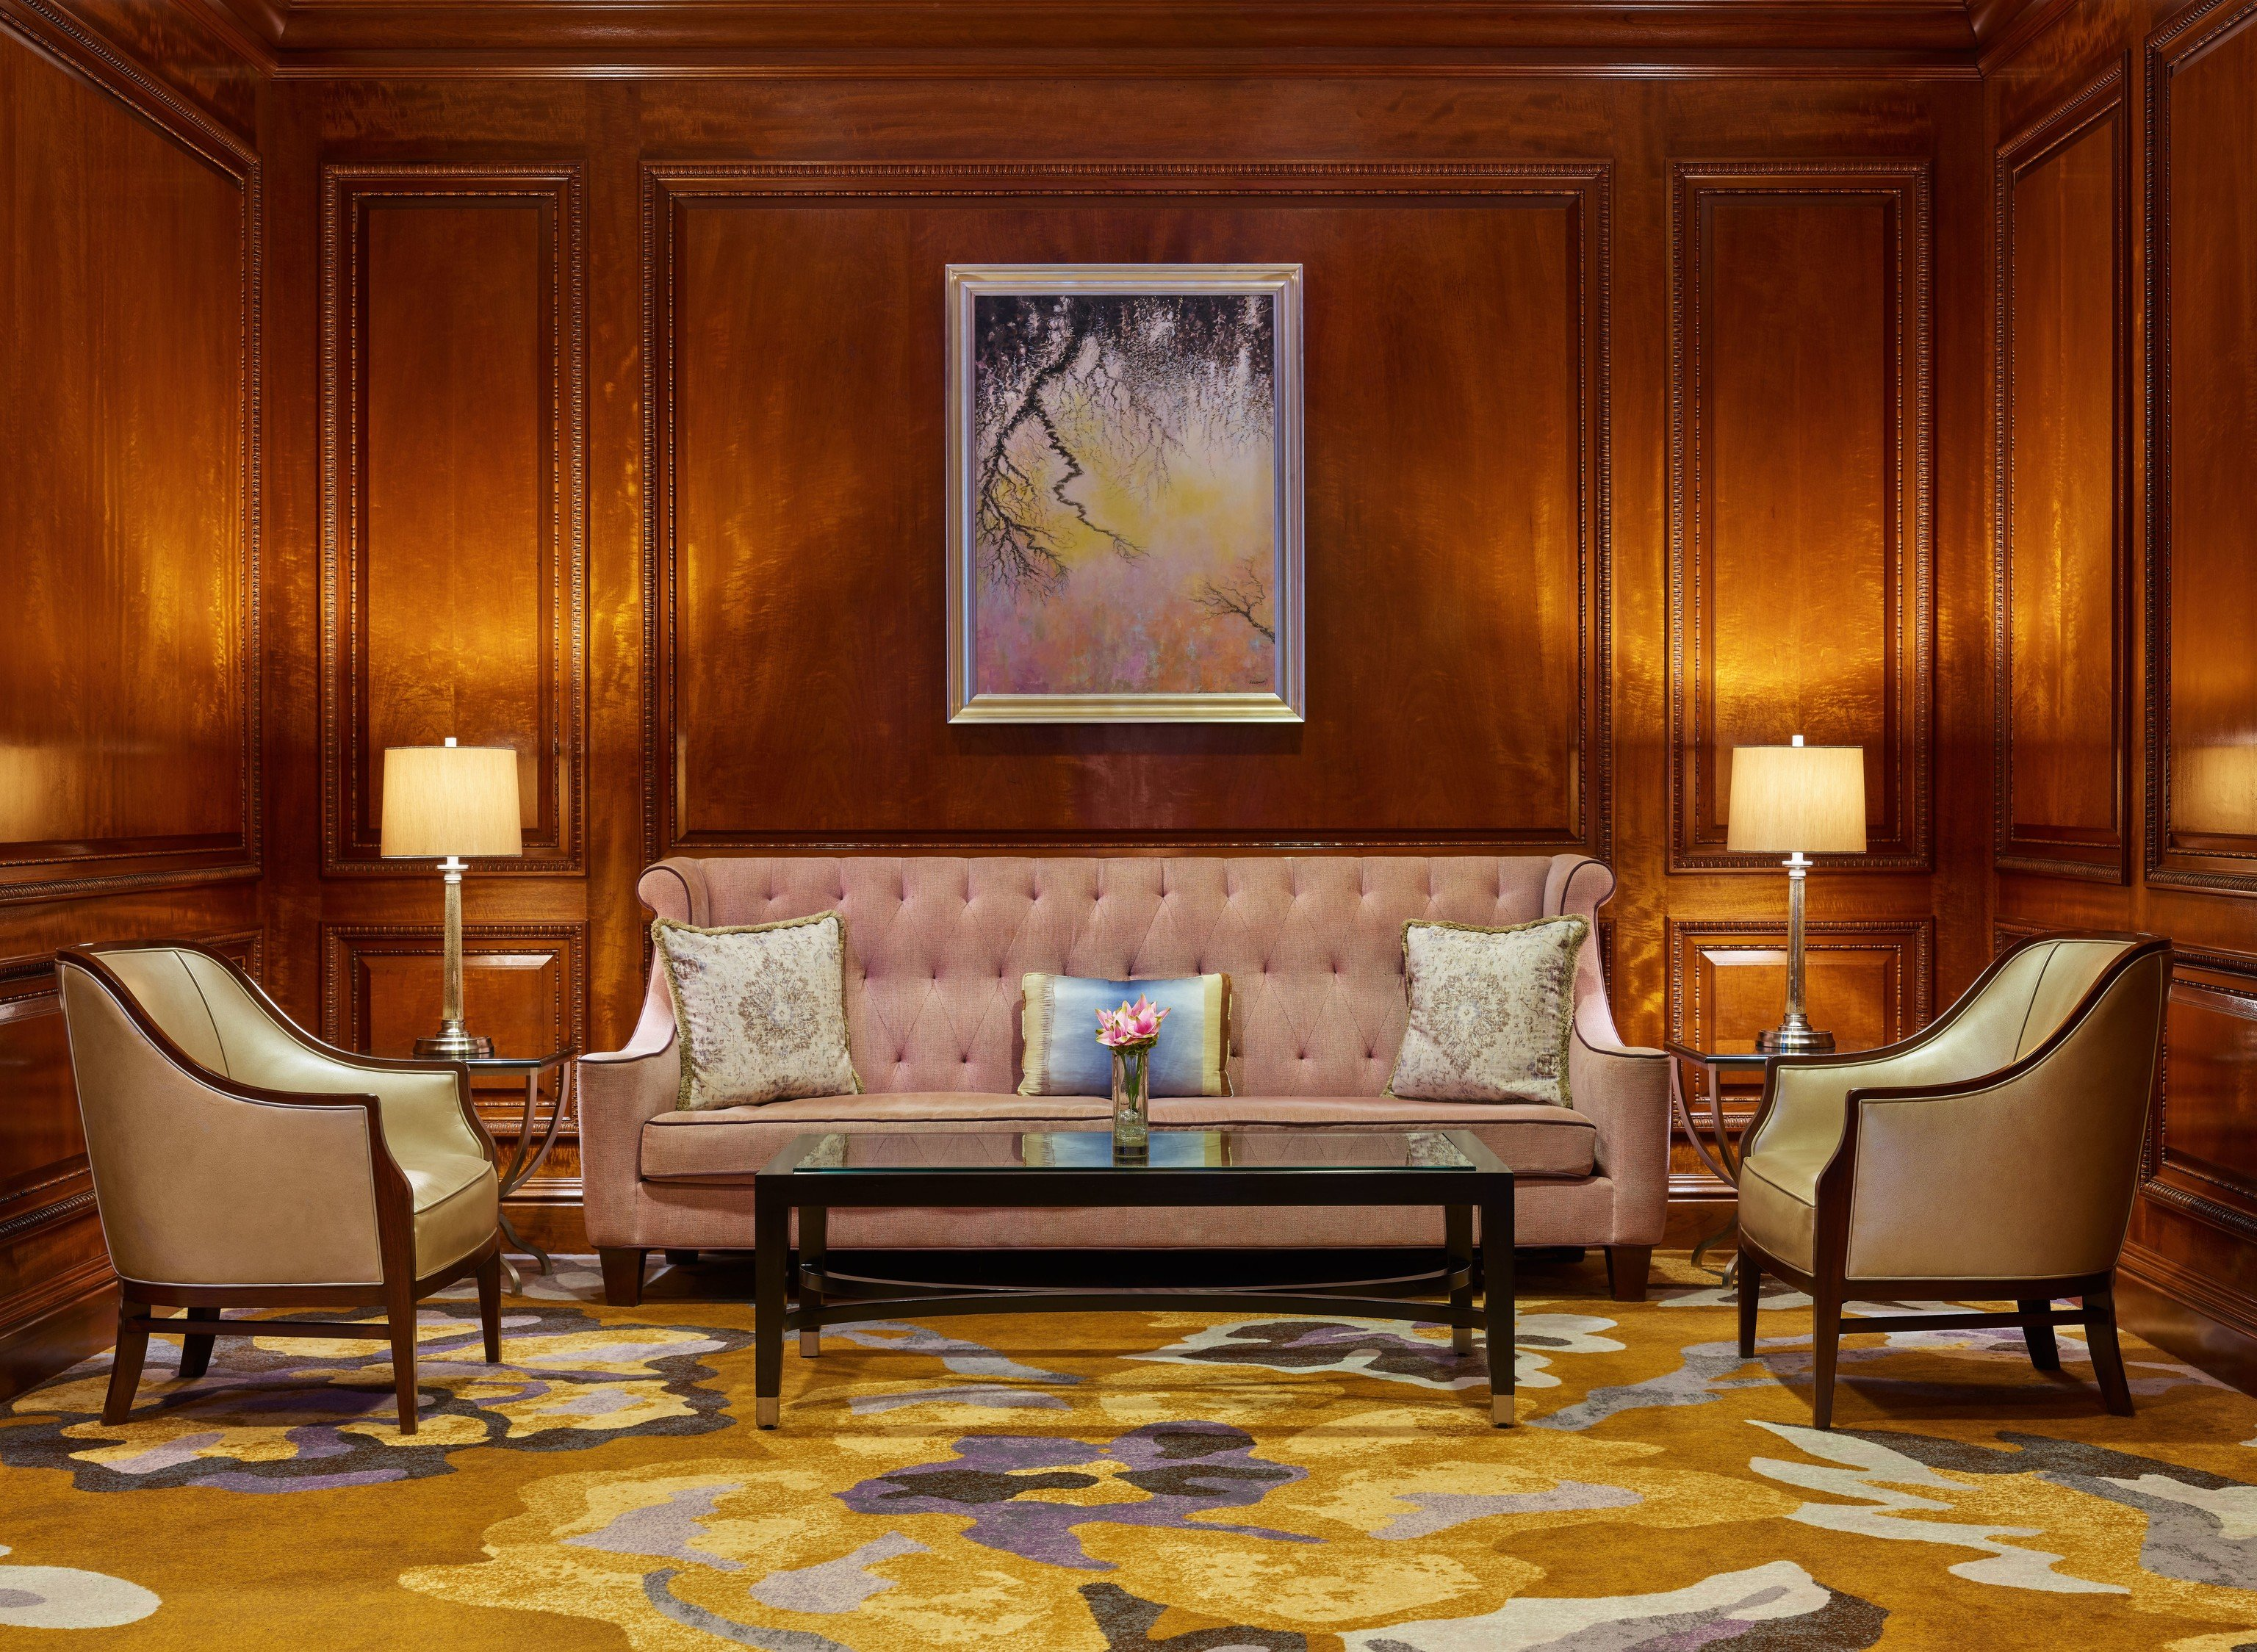 ccbc3f26967a0 The Whitley, A Luxury Collection Hotel, Atlanta Buckhead (Atlanta ...